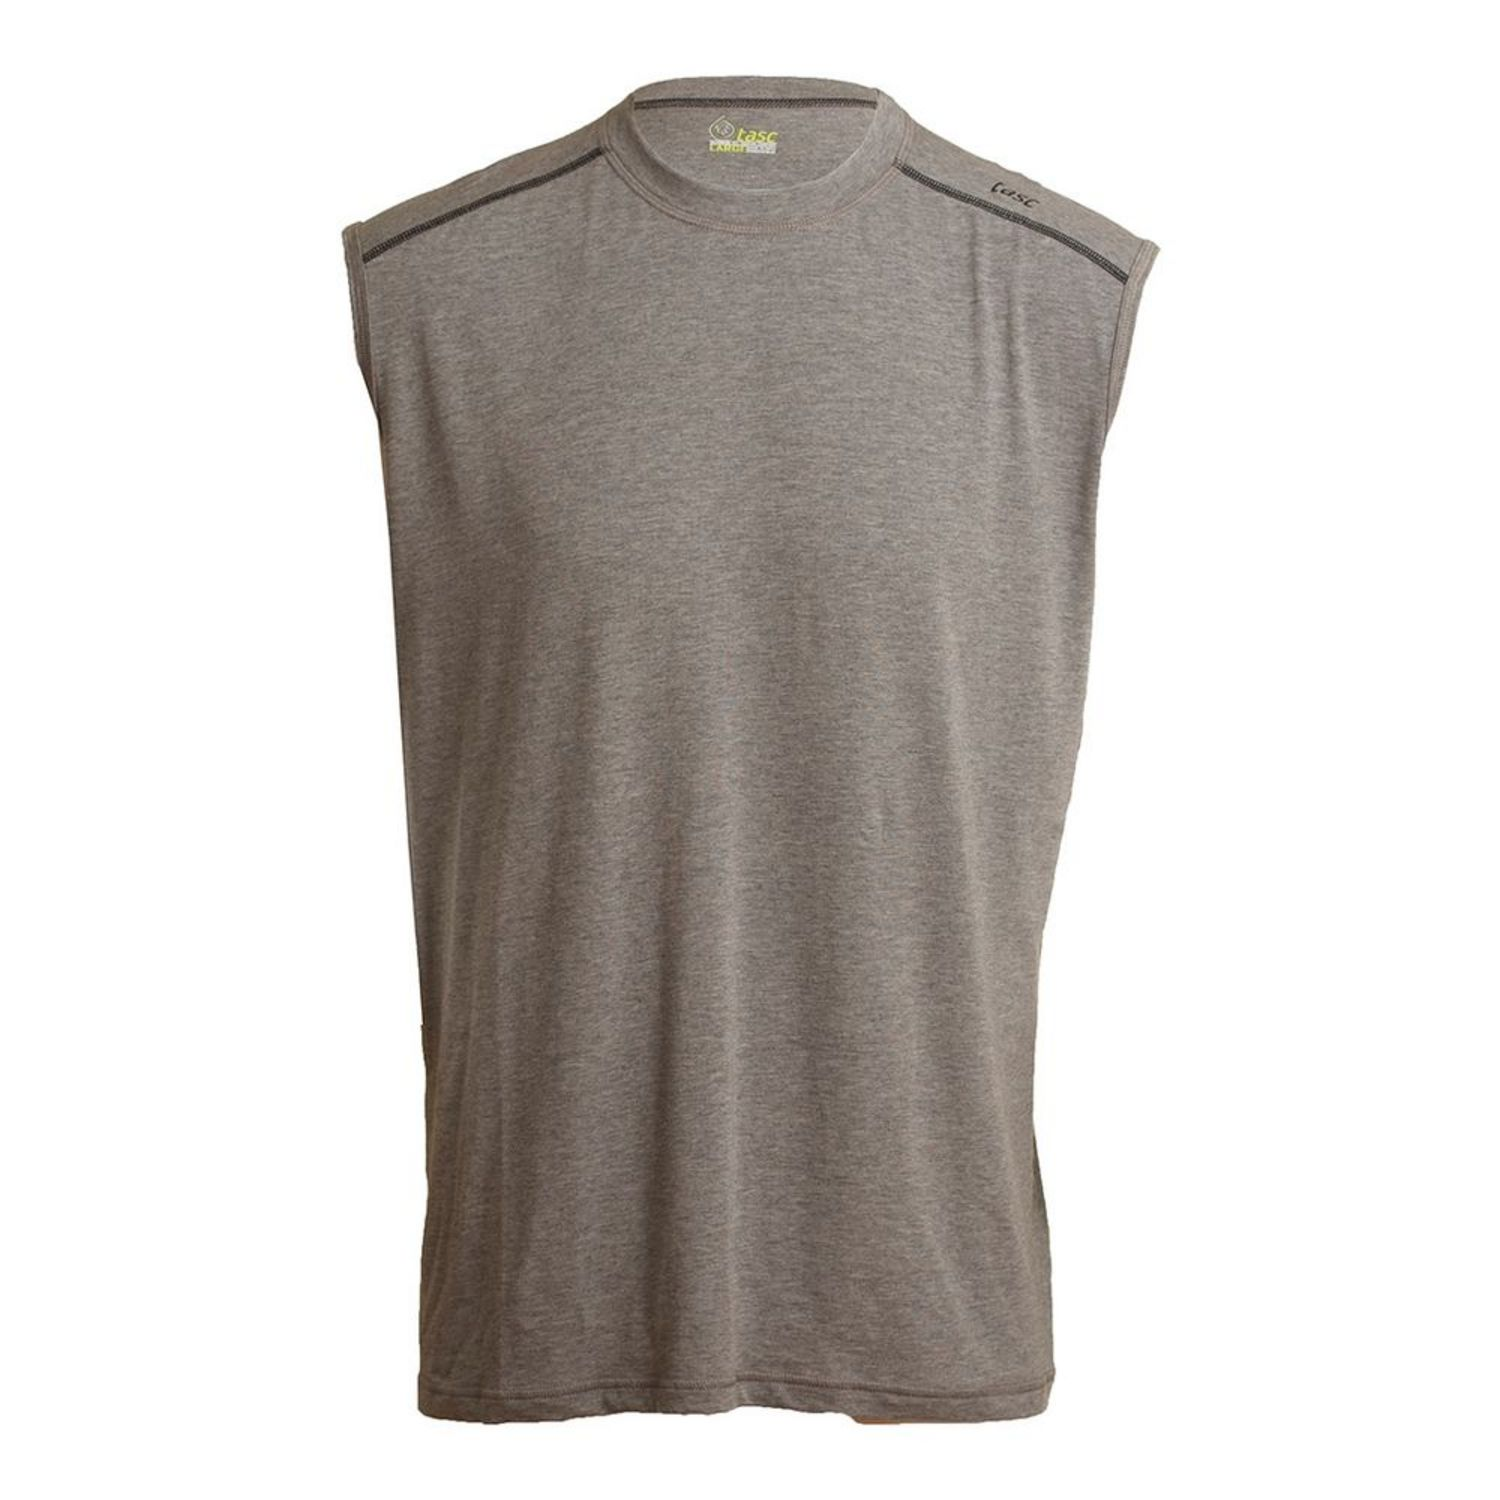 Tasc Men's Core Sleeveless